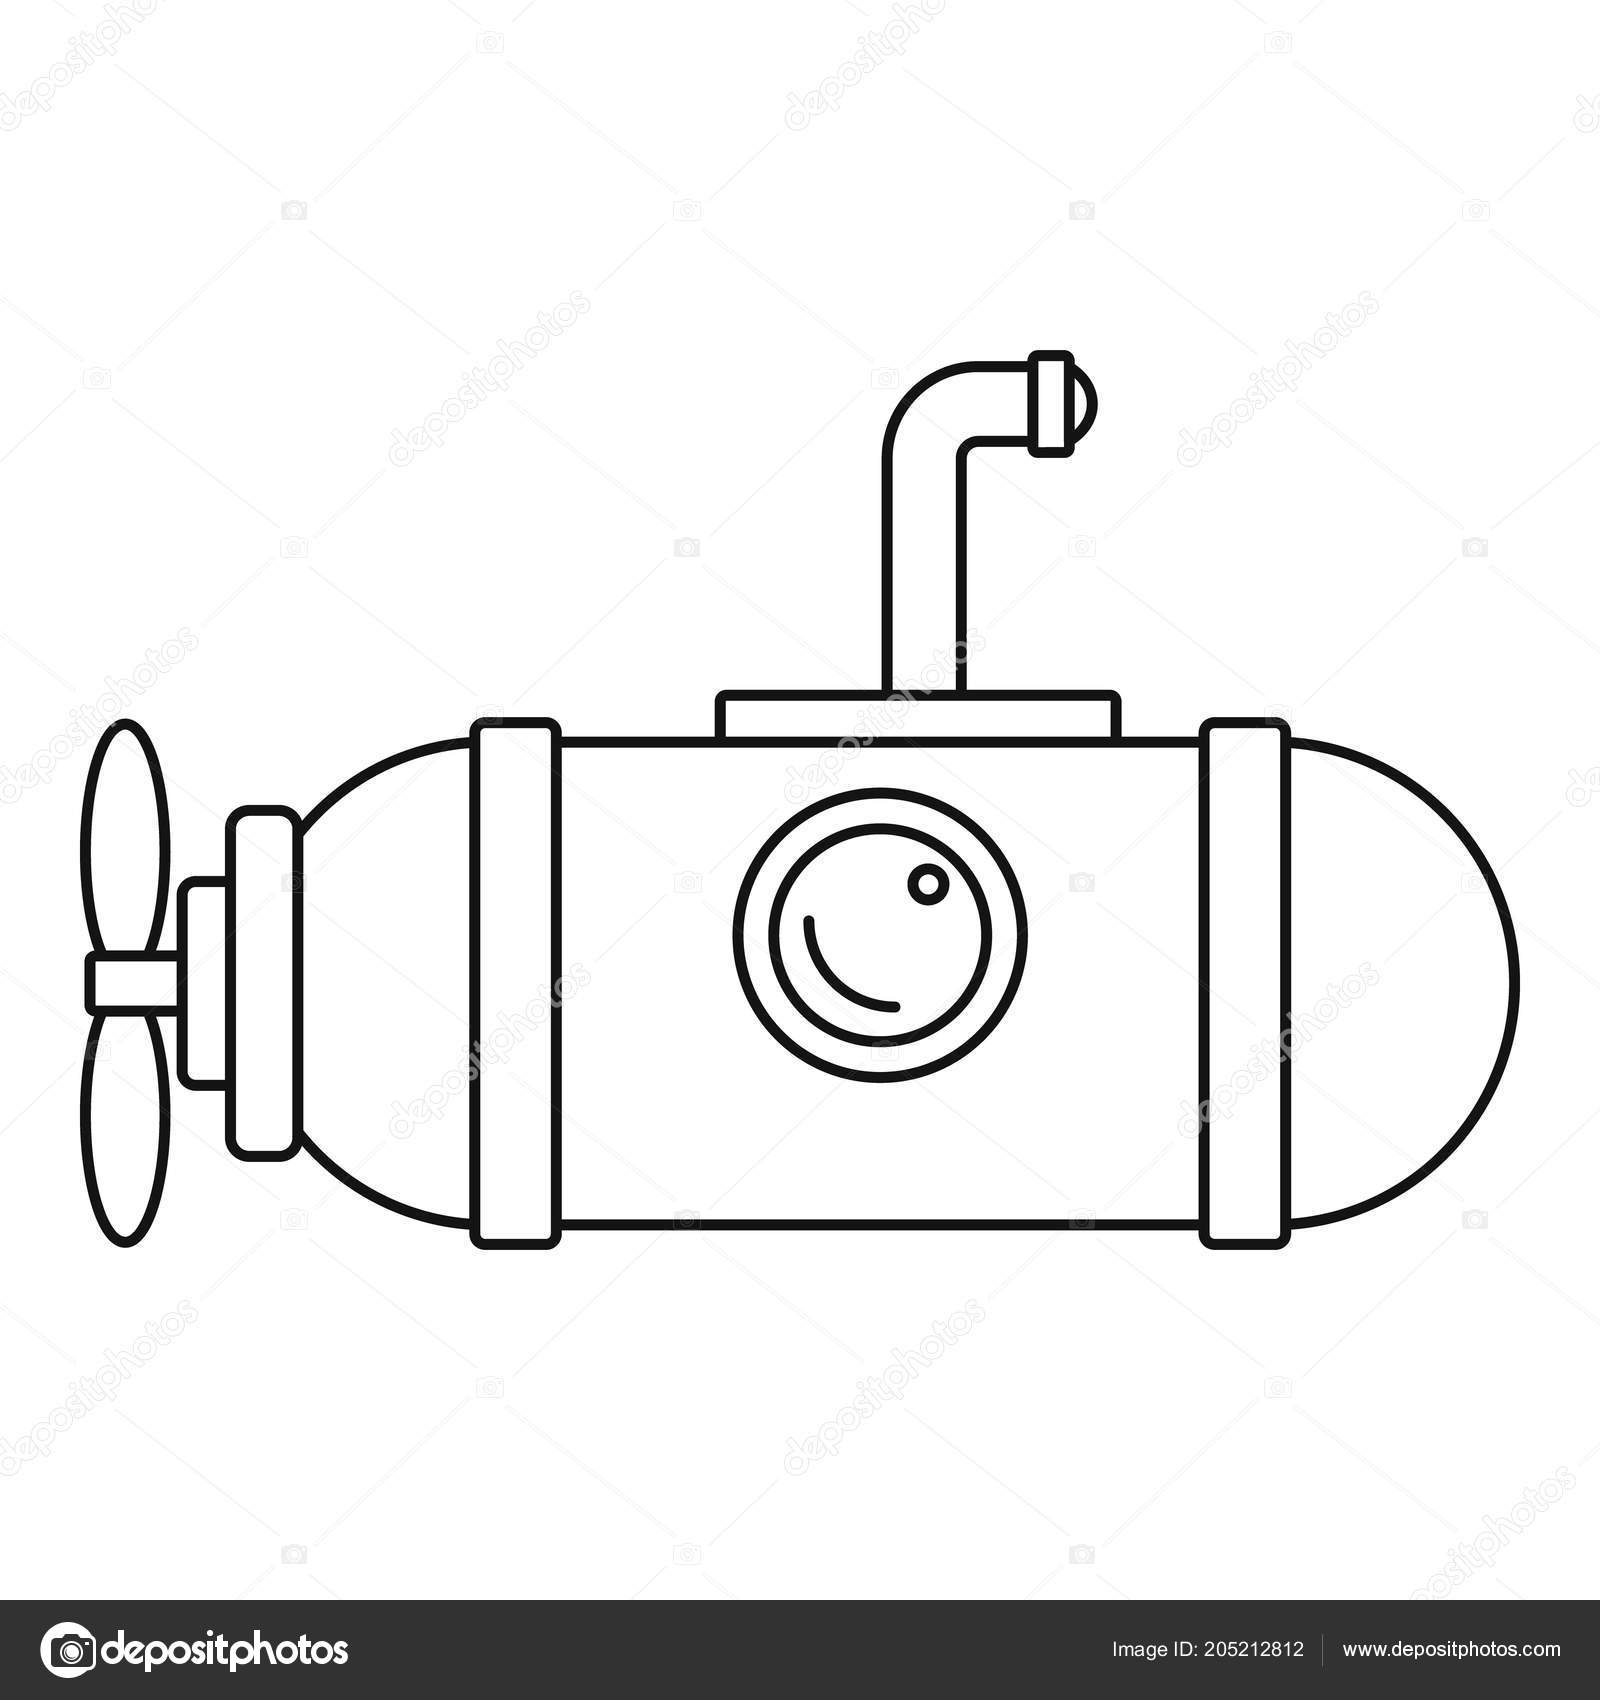 Small submarine icon, outline style — Stock Vector © anatolir #205212812